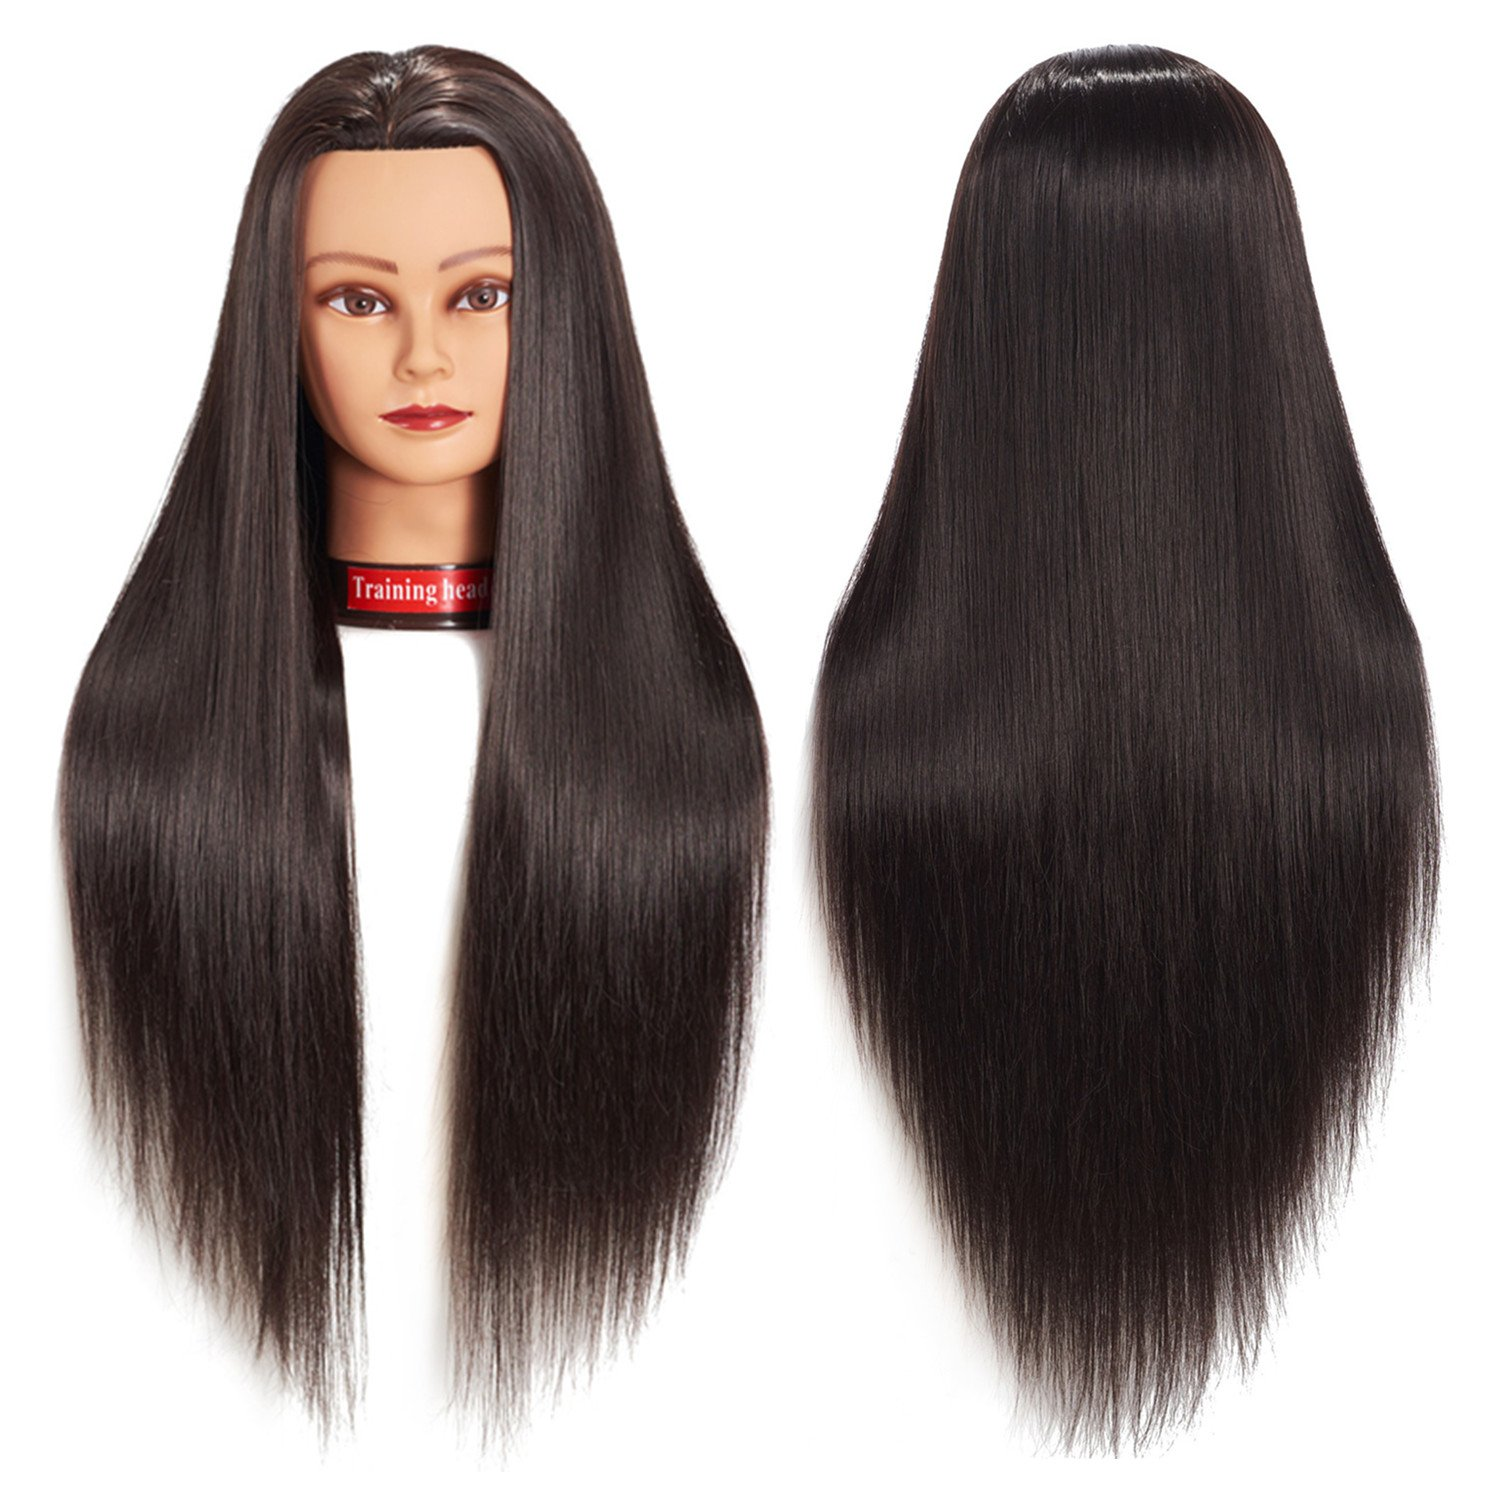 Training Head 26''-28'' Mannequin Head Hair Styling Manikin Cosmetology Doll Head Synthetic Fiber Hair Hairdressing Training Model Free Clamp (1813LB0220)